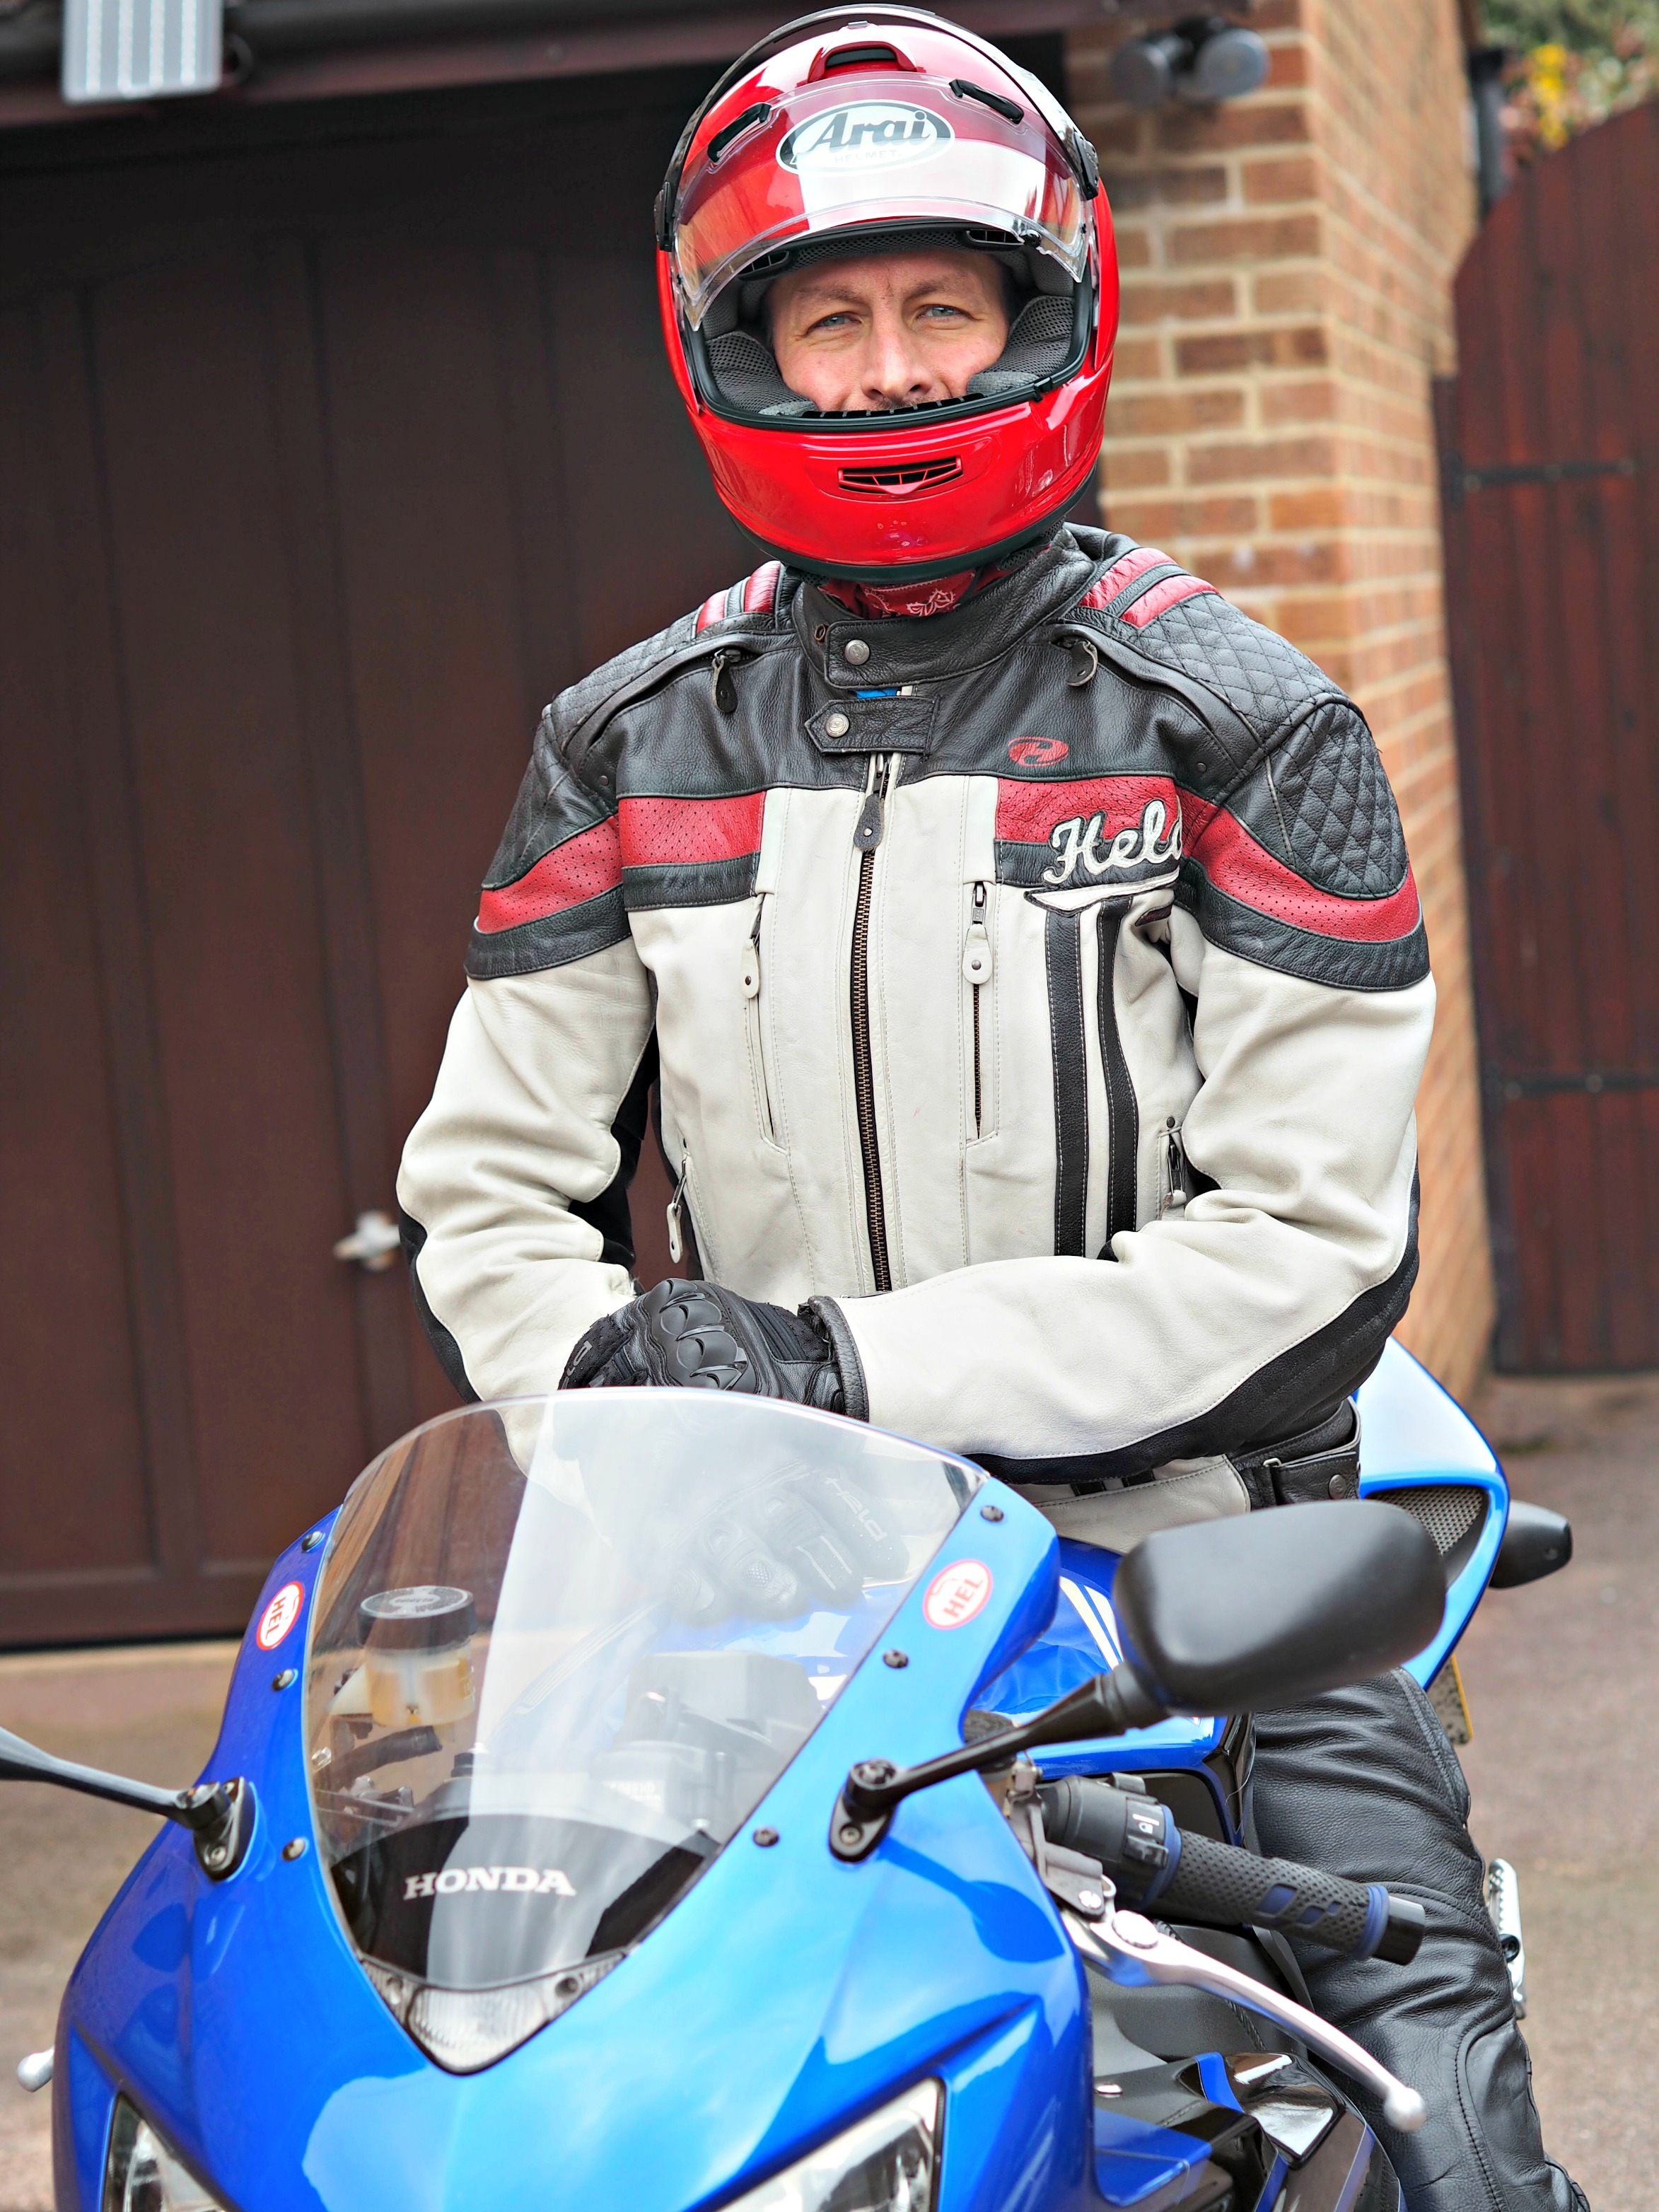 Five Tips if you Want to Get Back into Motorbiking